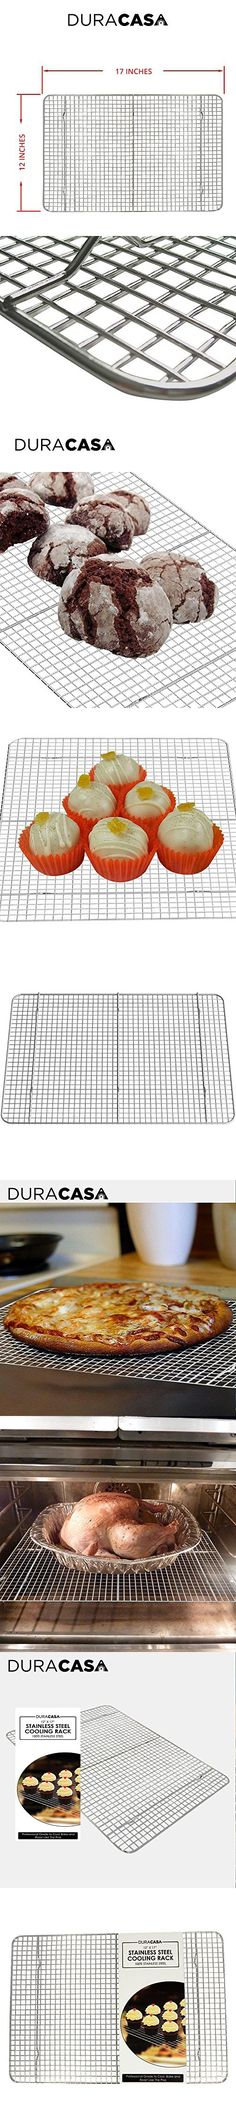 Premium Quality Cooling Rack for Baking Set of 2 Included - Non ...